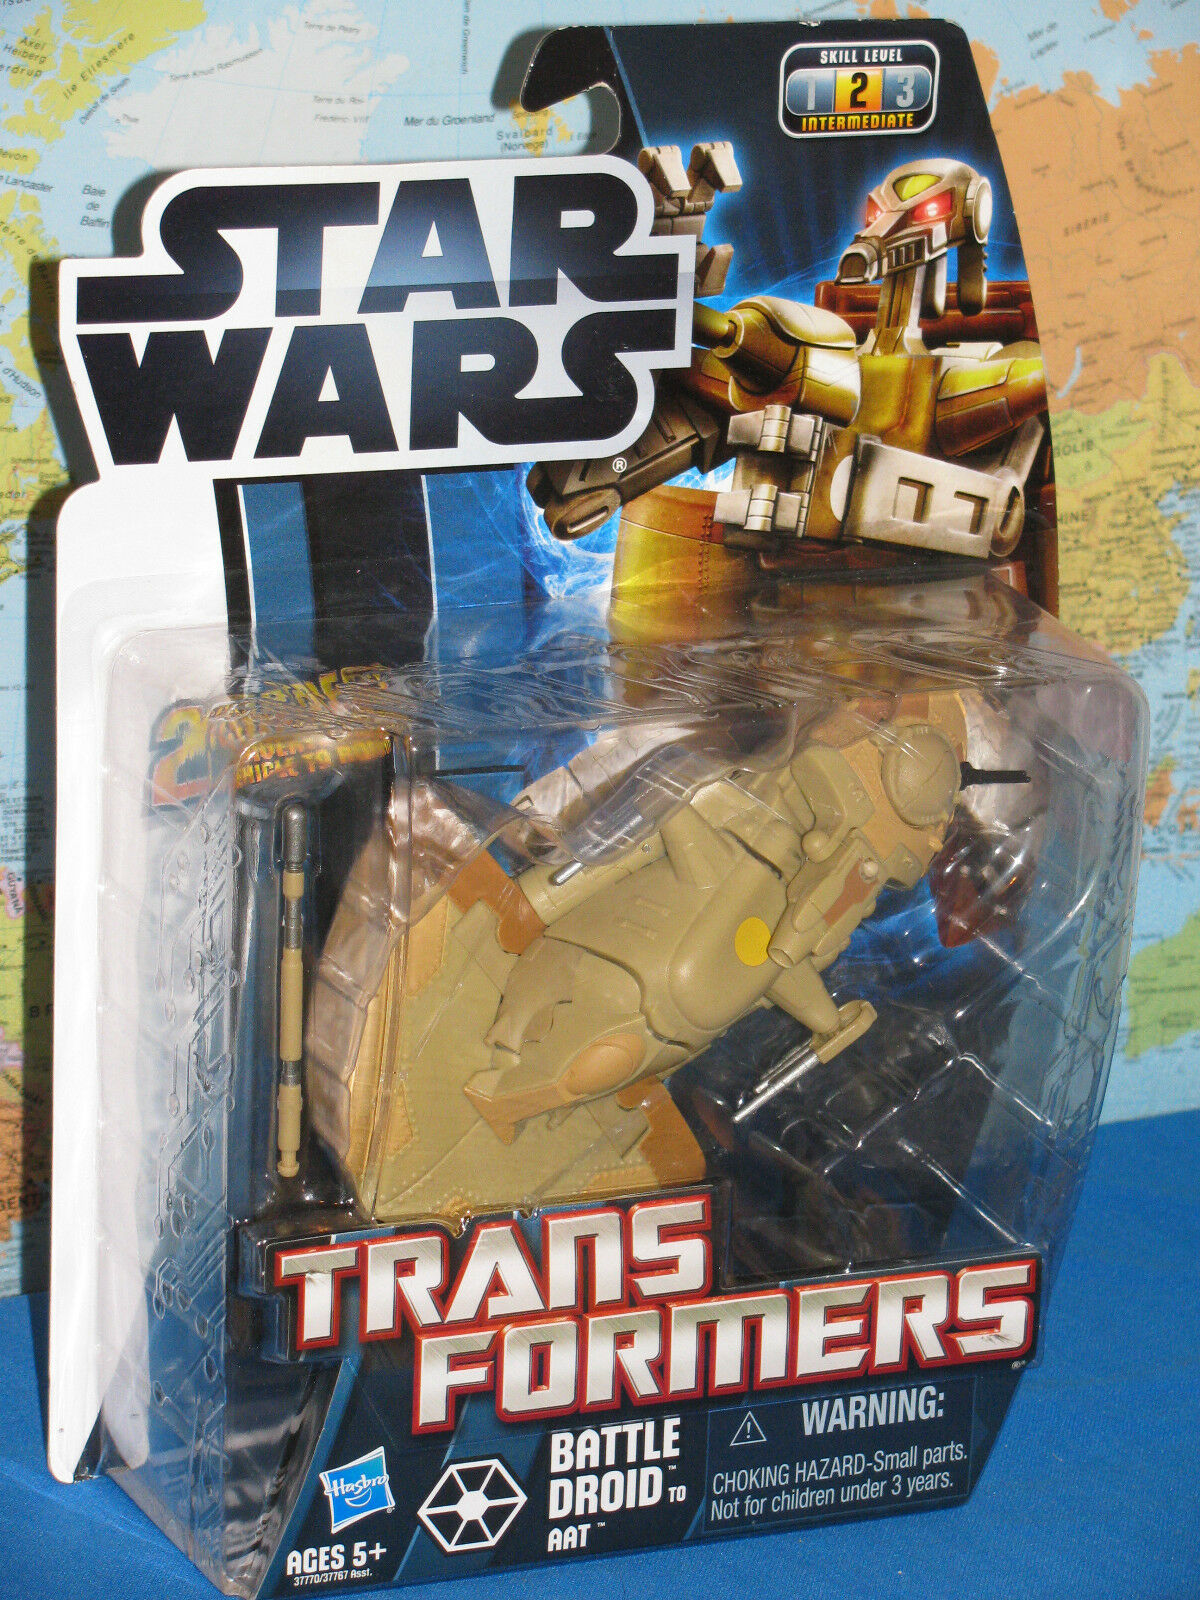 STAR WARS TRANSFORMERS BATTLE DROID TO AAT LEVEL 2 BRAND NEW & RARE